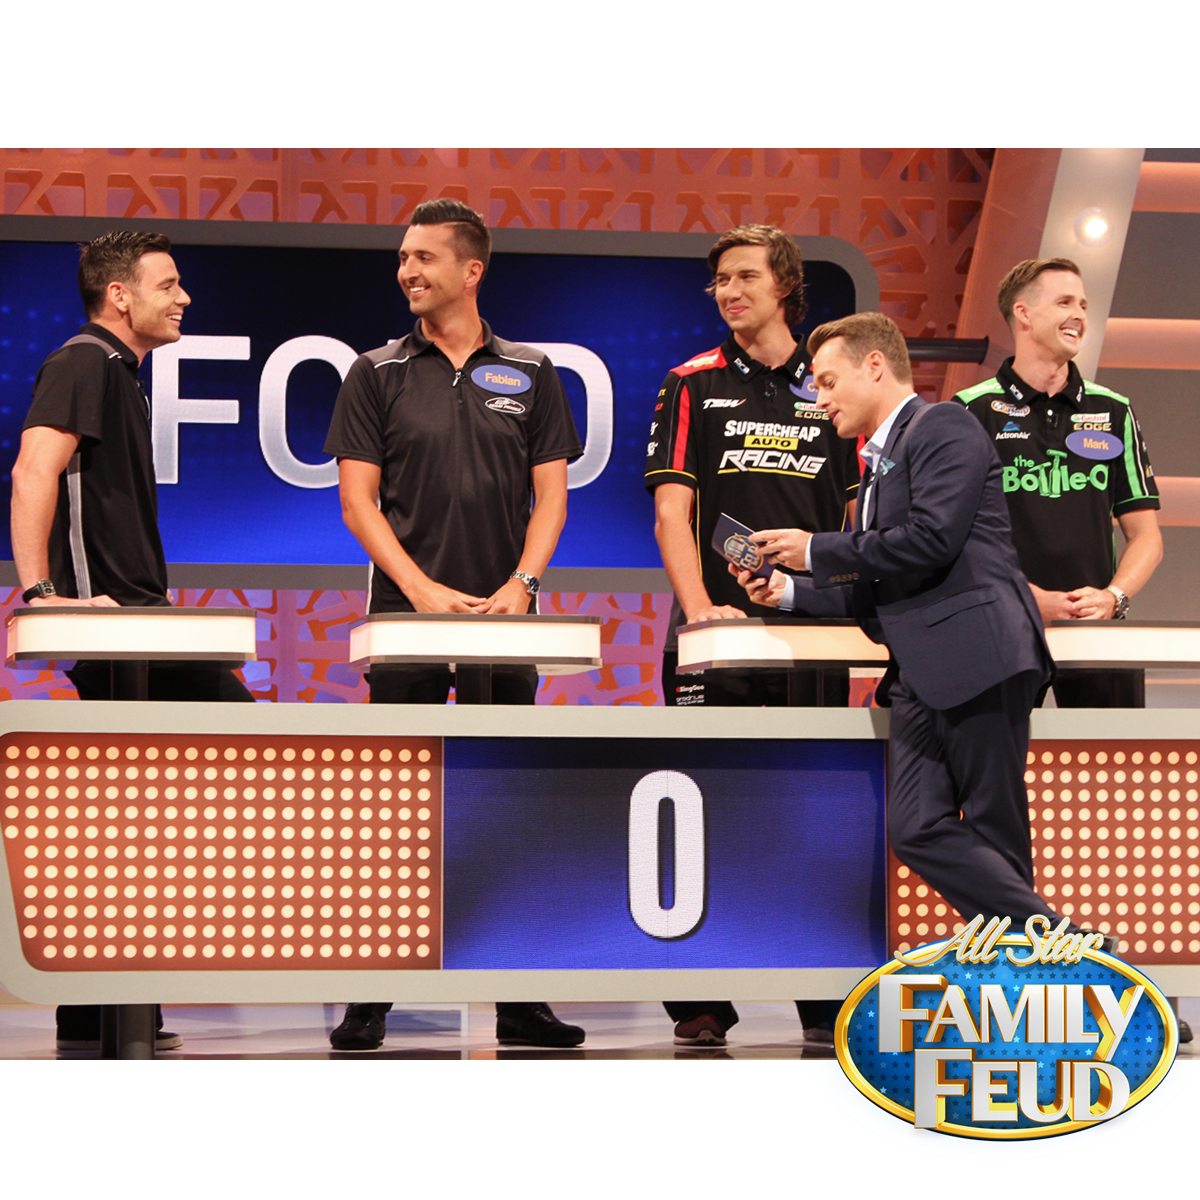 Family Feud Ford